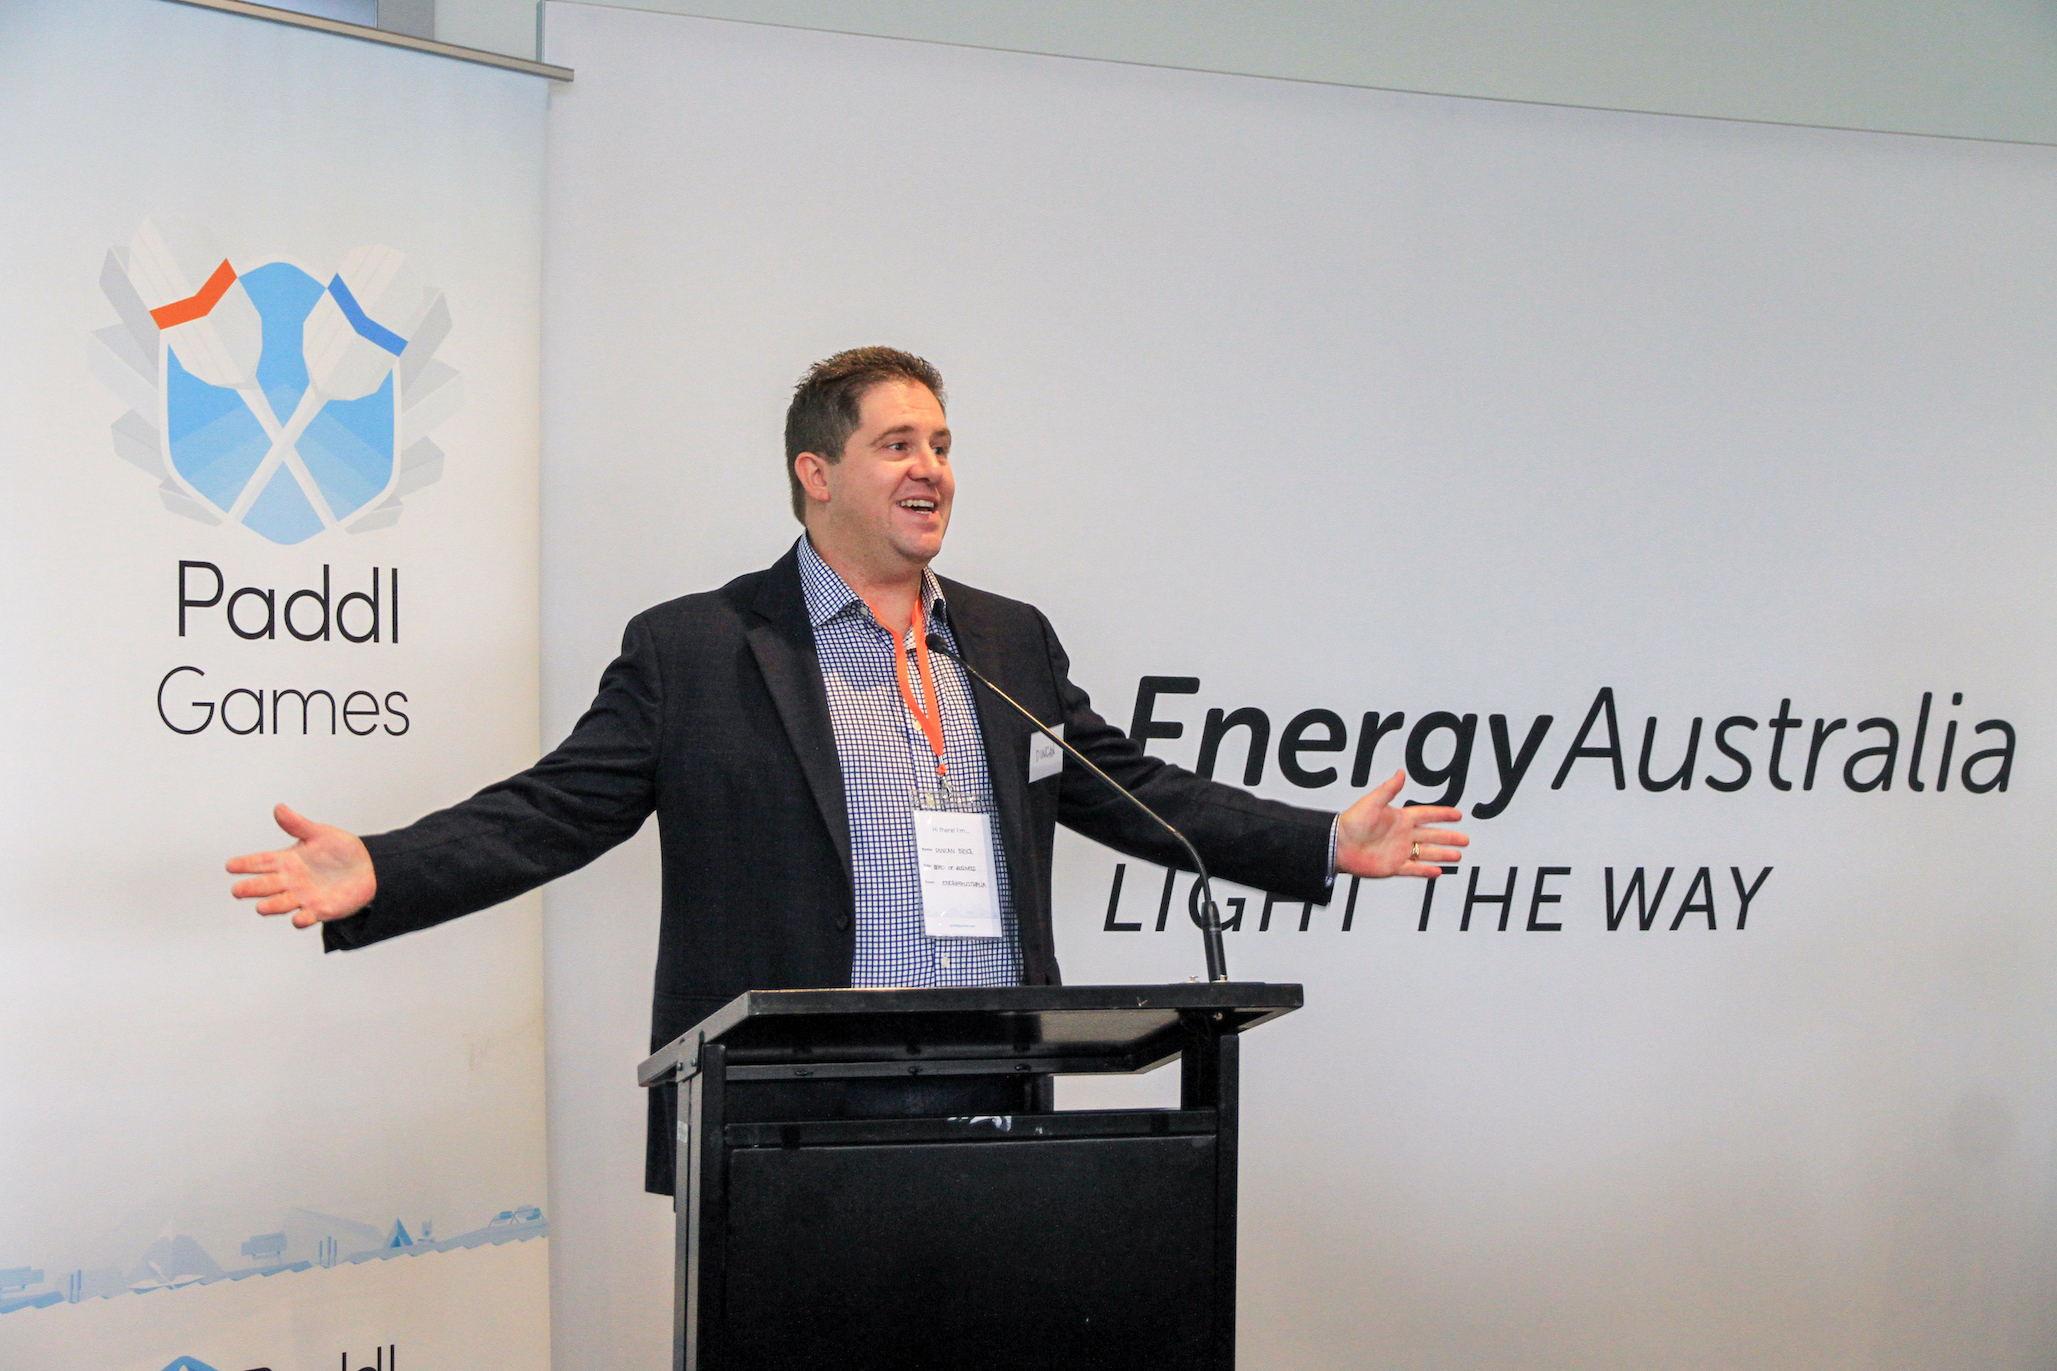 Duncan Bryce, Head of Business at EnergyAustralia, kicks off the day with enthusiasm